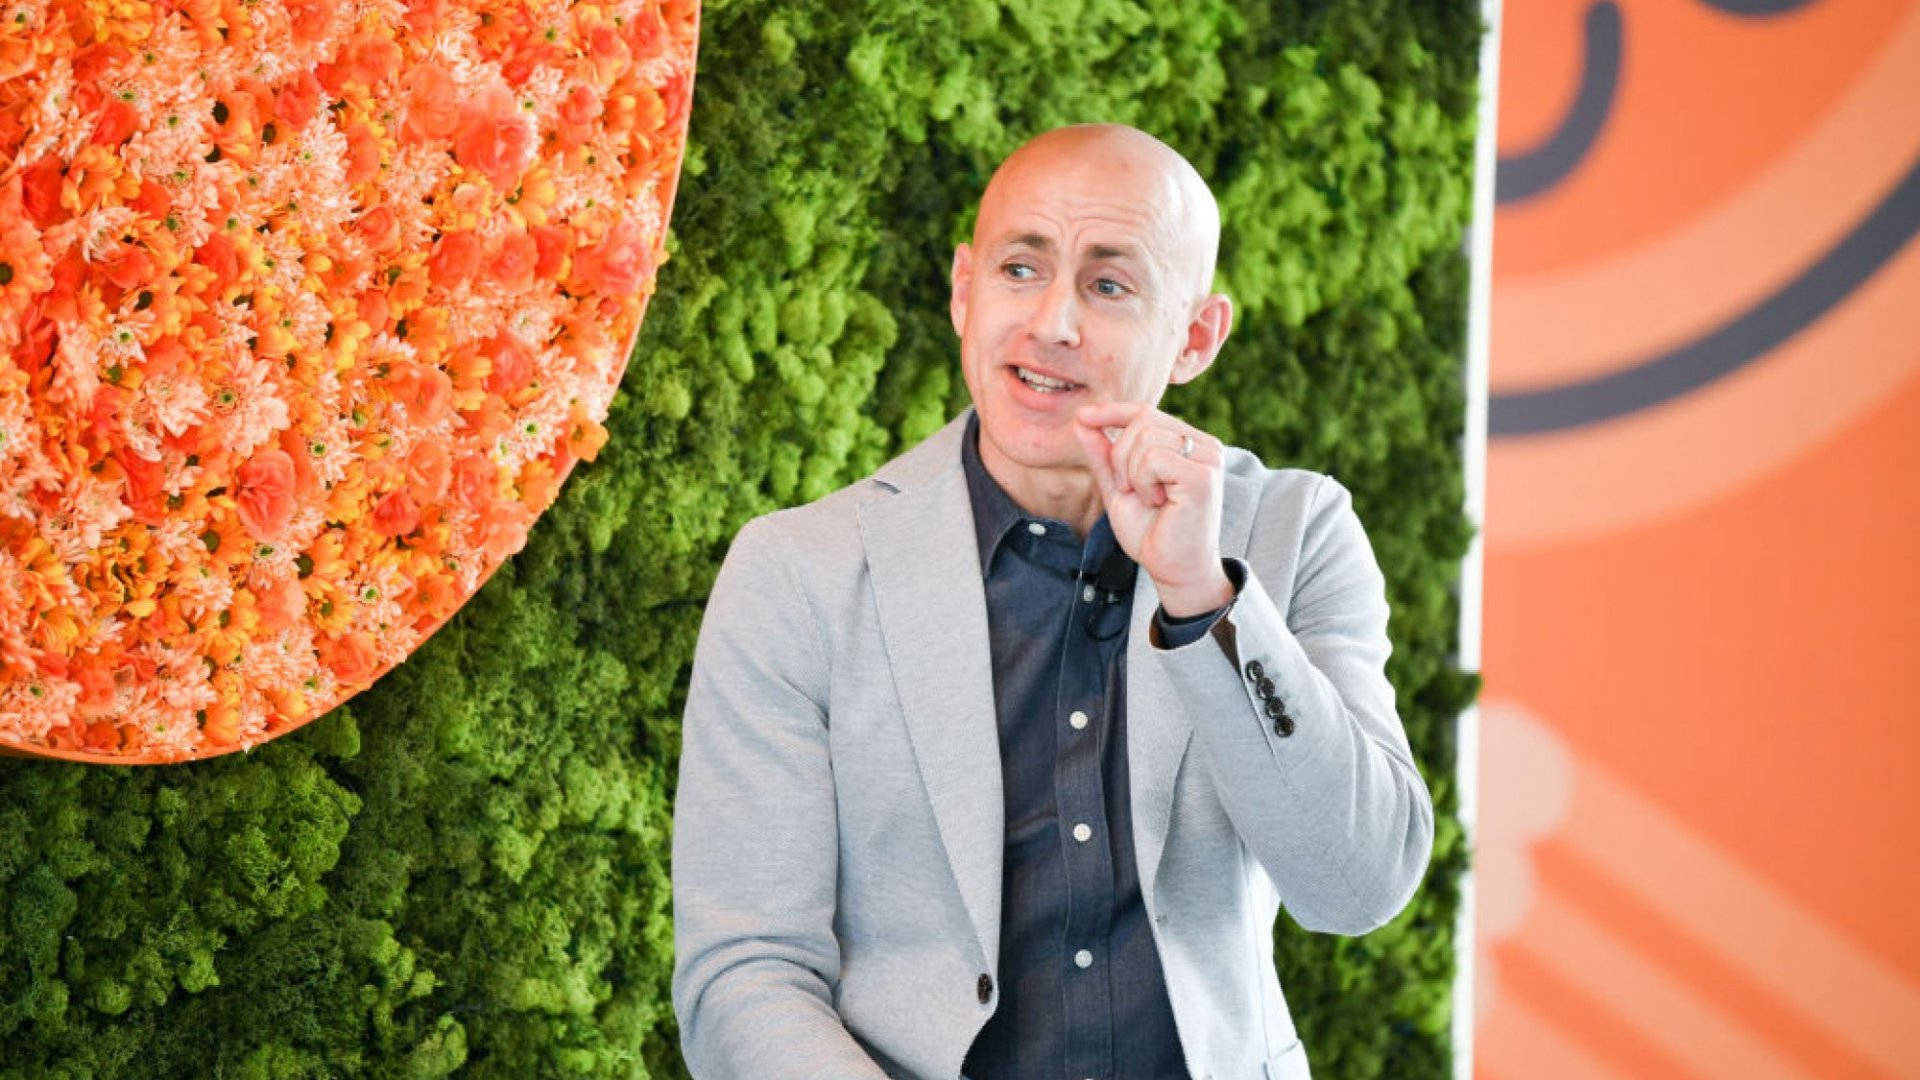 Headspace Co-Founder Andy Puddicombe Has a Simple Plan to Help Your Team Avoid Burnout